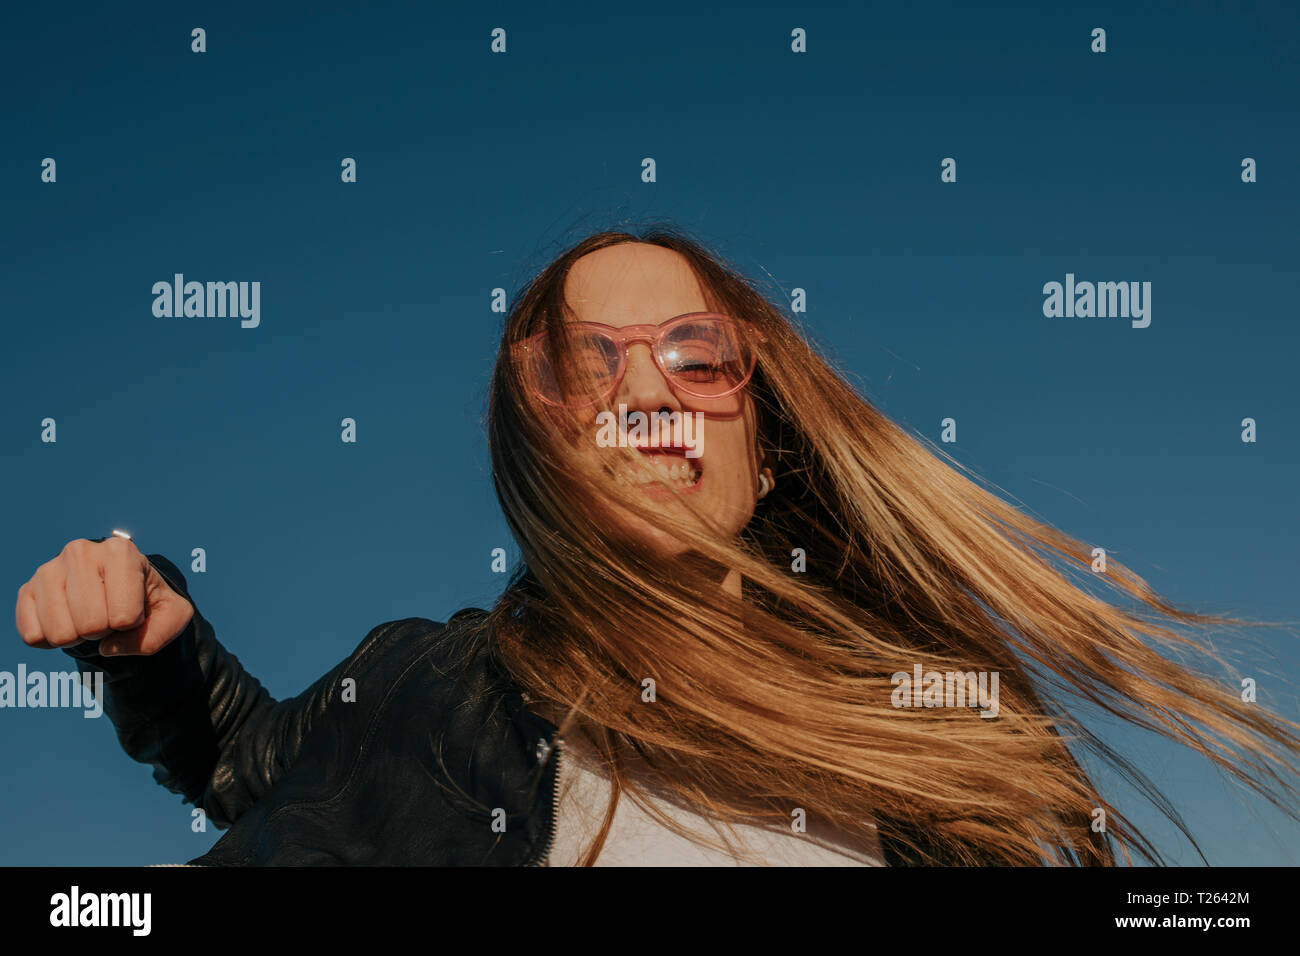 Portrait of aggressive young woman punching under blue sky - Stock Image